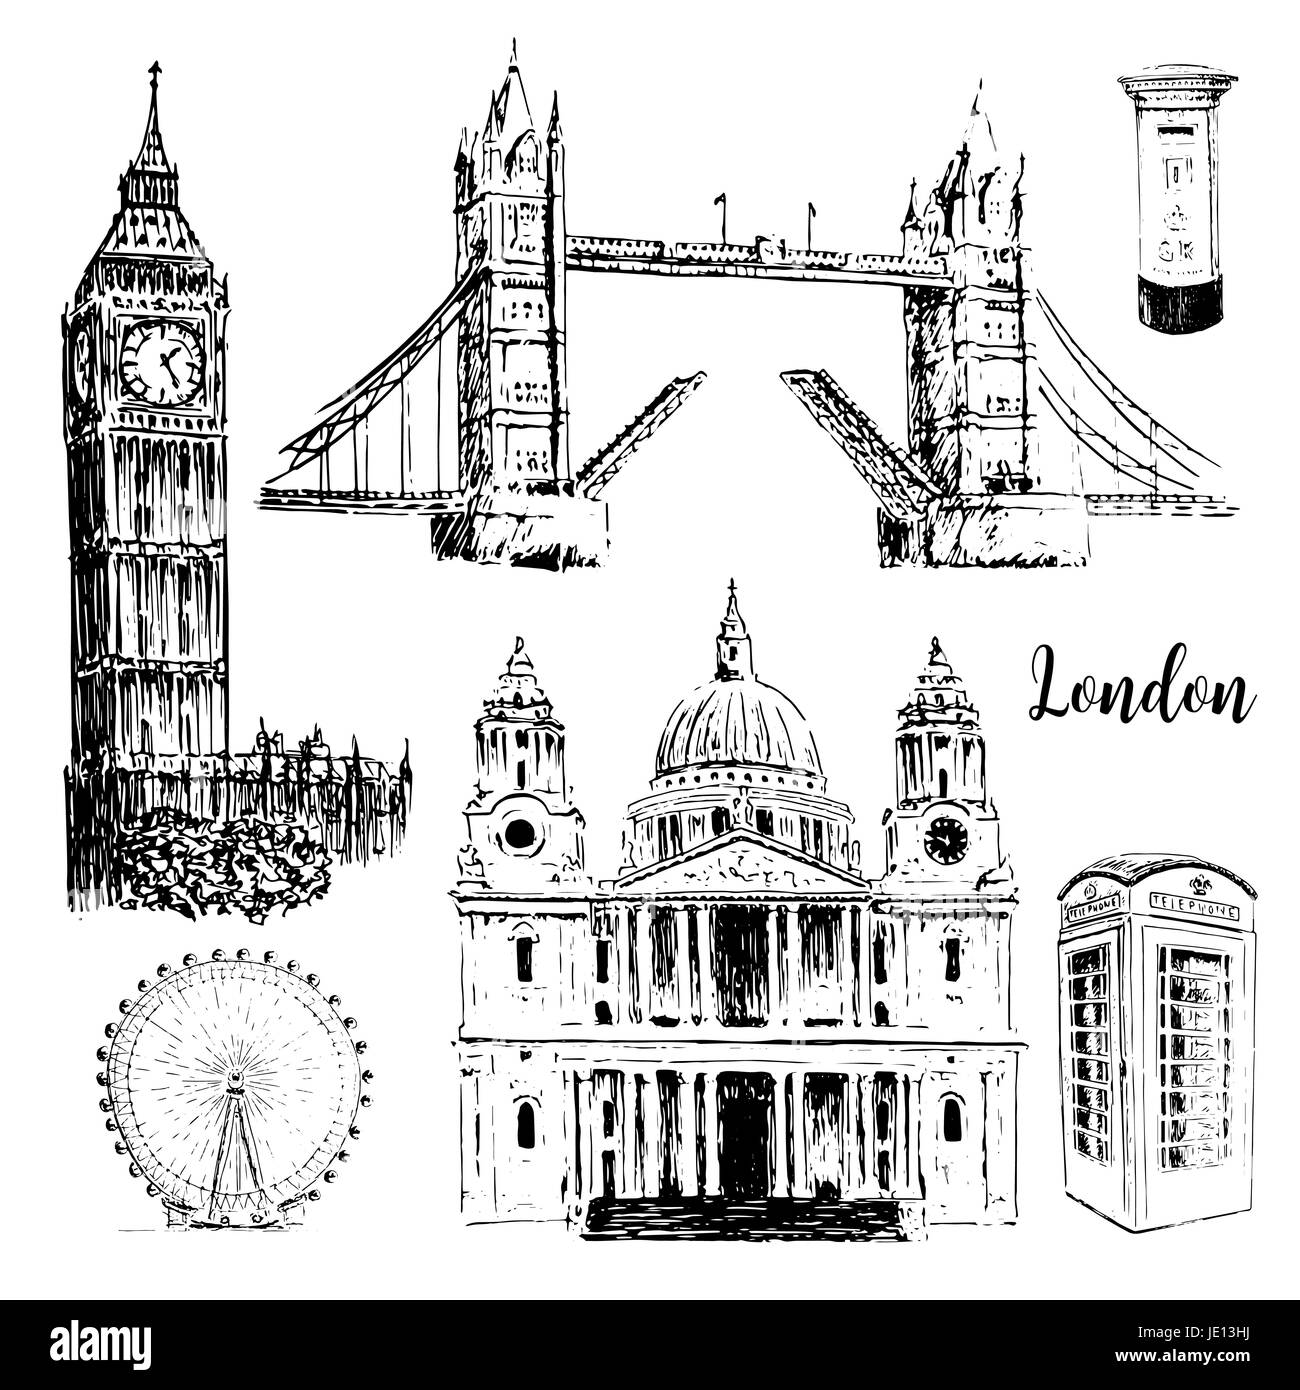 London architectural symbols: St. Paul Cathedral, Big Ben and Tower Bridge, London eye. Beautiful hand drawn vector - Stock Vector